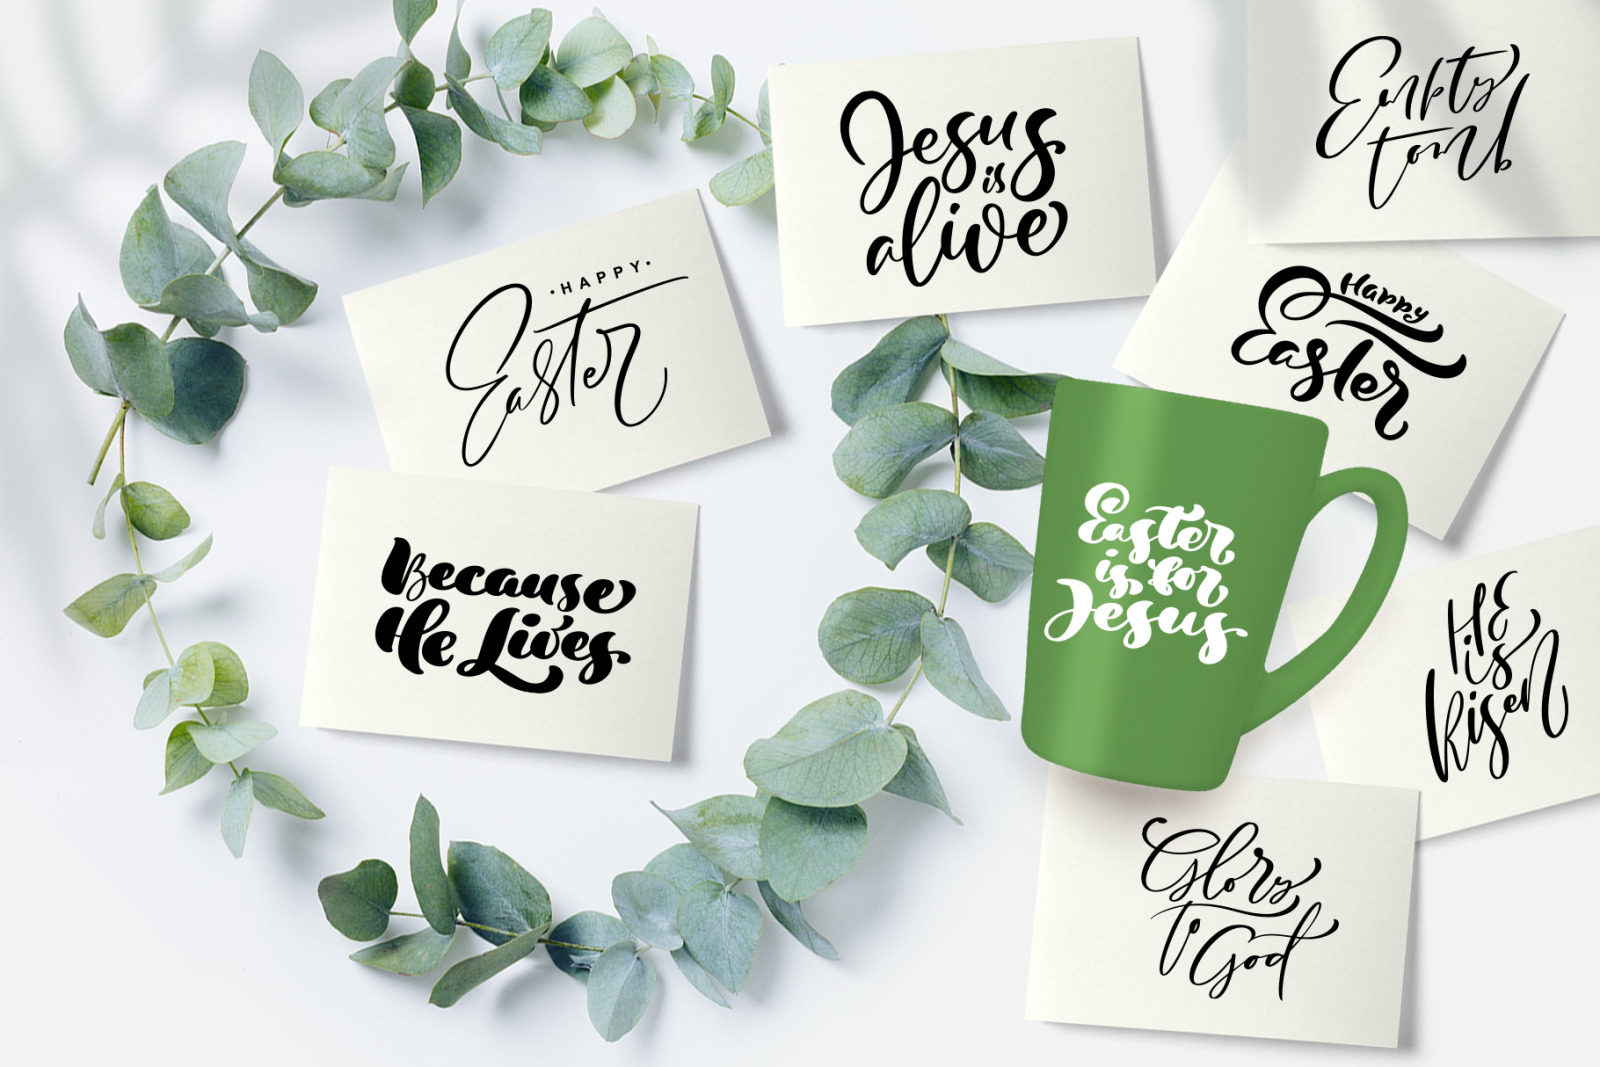 Happy Easter Christian quotes